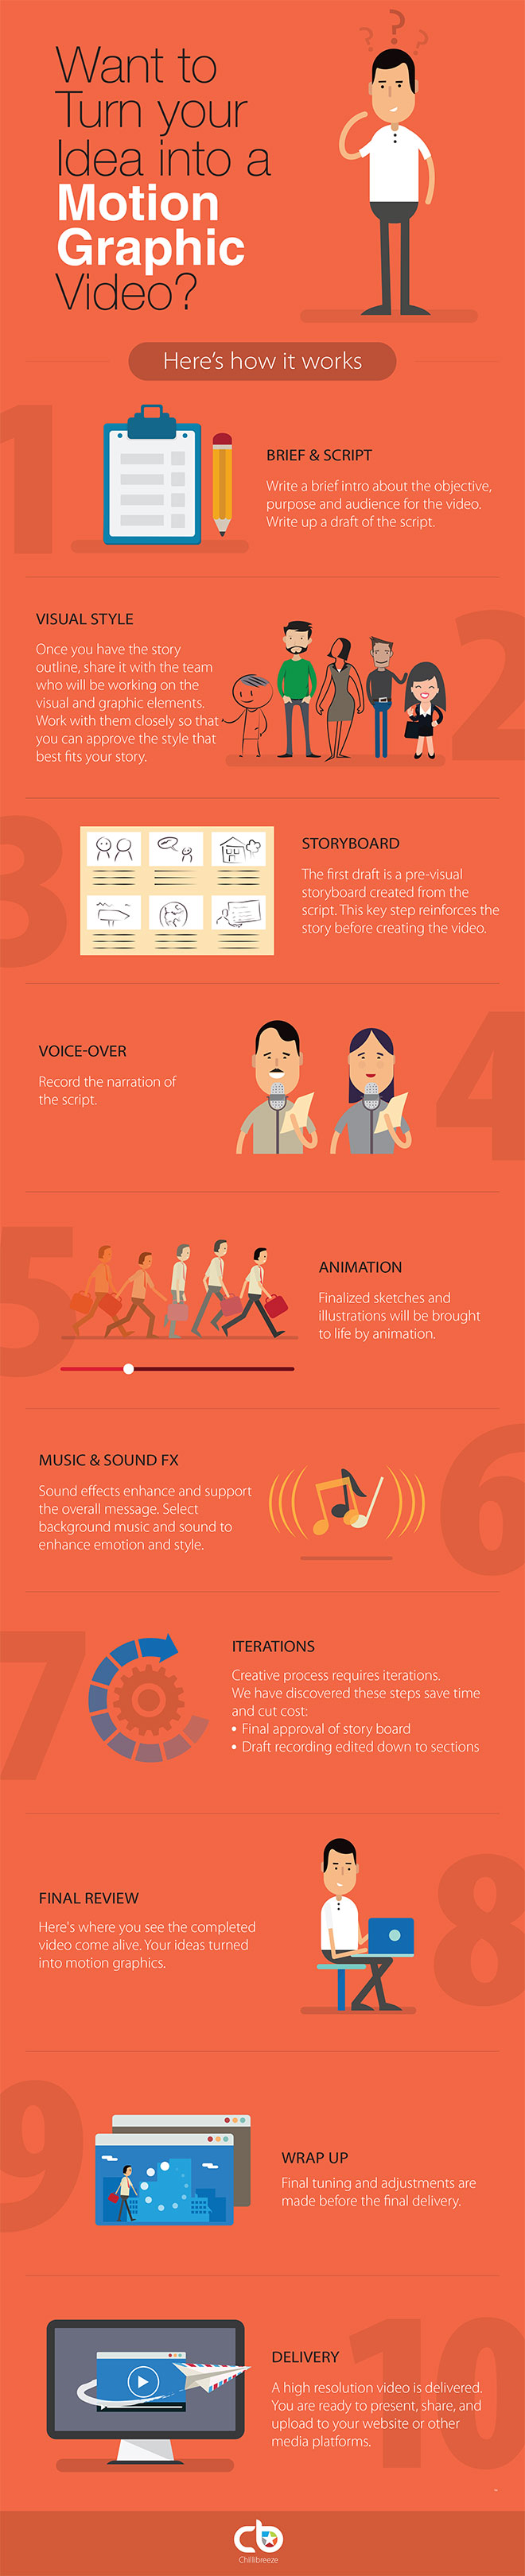 10-Simple-Ways-to-Bring-Your-Motion-Graphic-Idea-to-Life.jpg